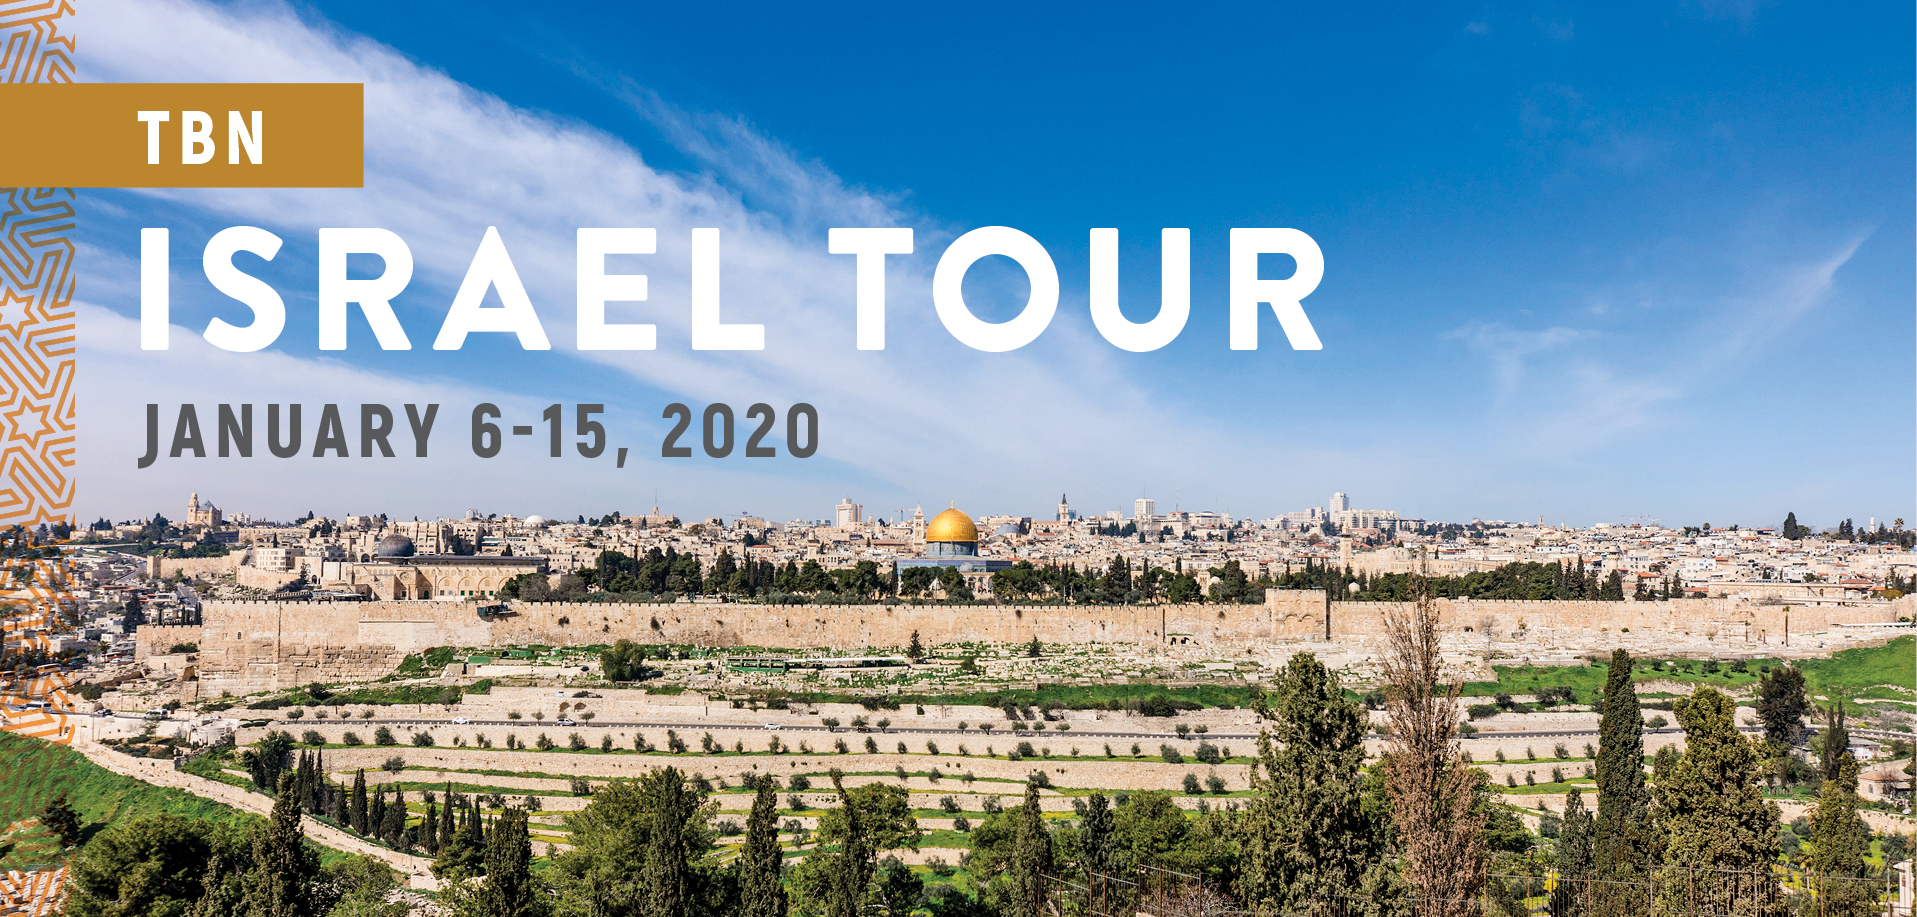 Take a Christian TourWOX with TBN - Israel Tour - January 6-15, 2020